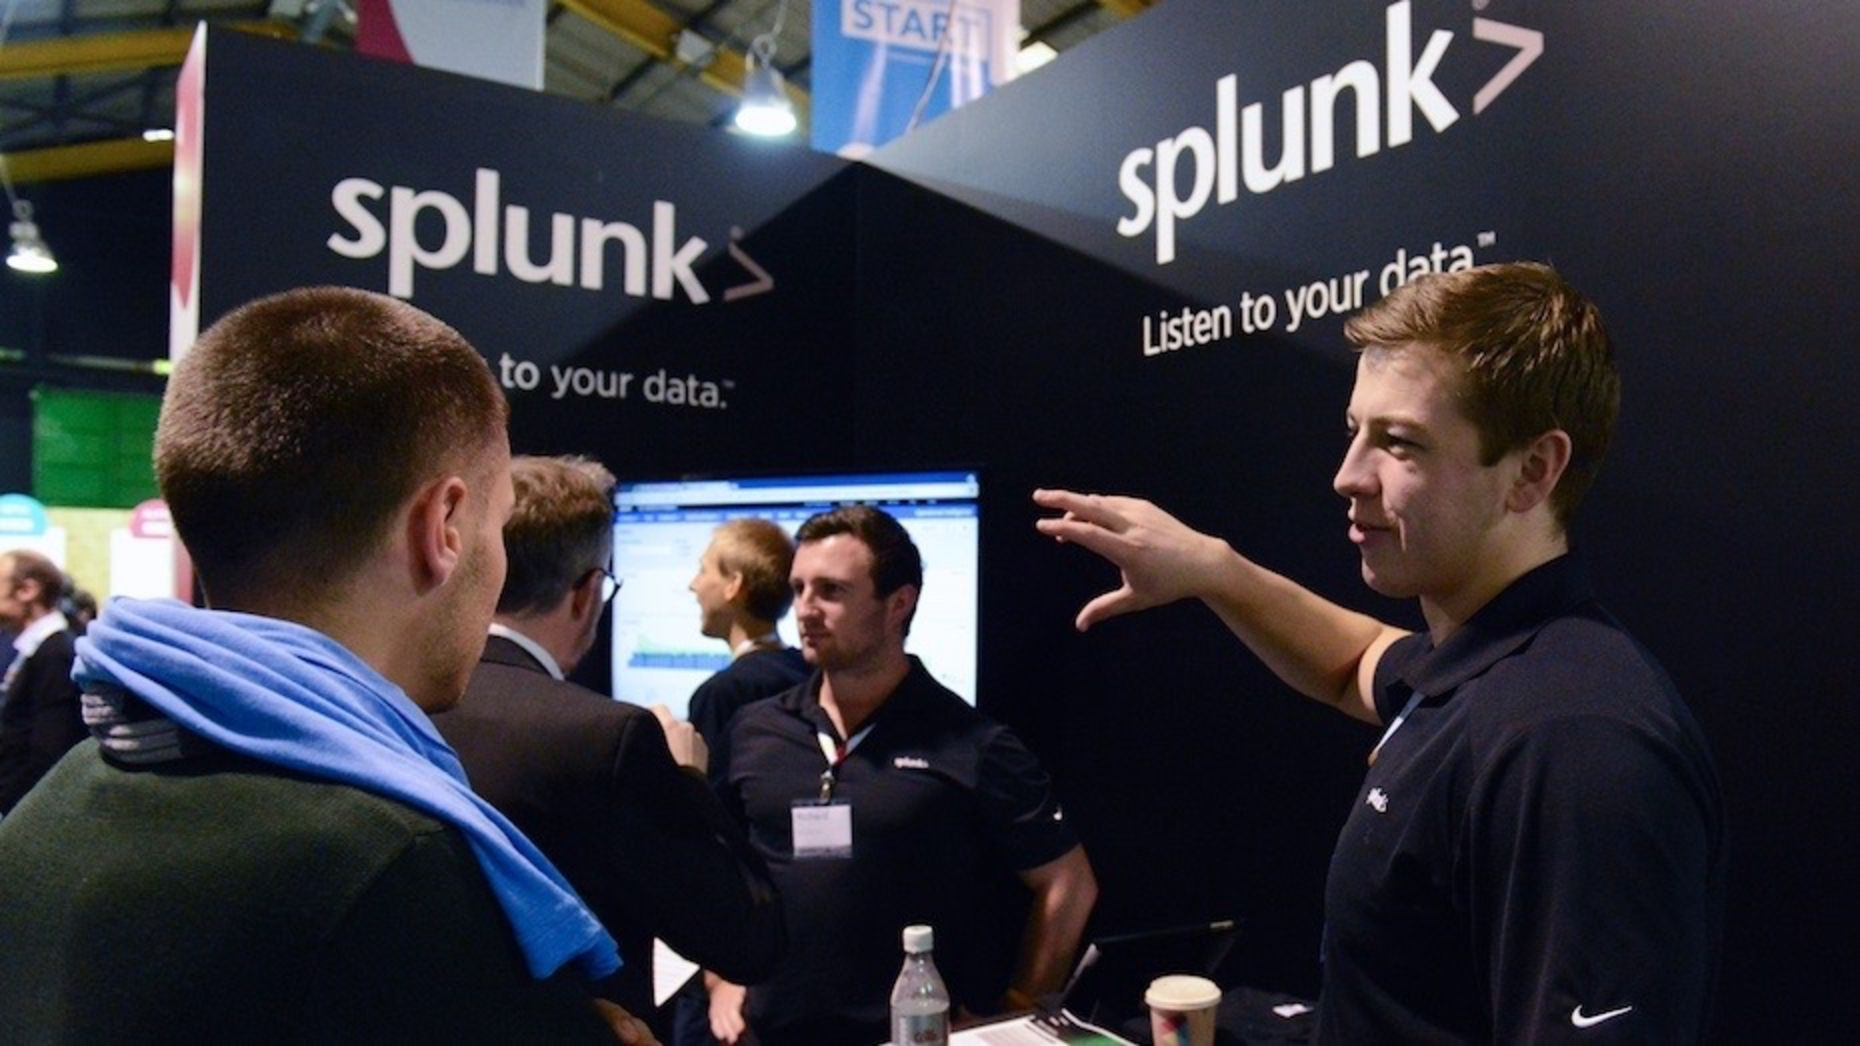 Splunk representatives at Web Summit in 2012. Photo by Flickr/Web Summit.